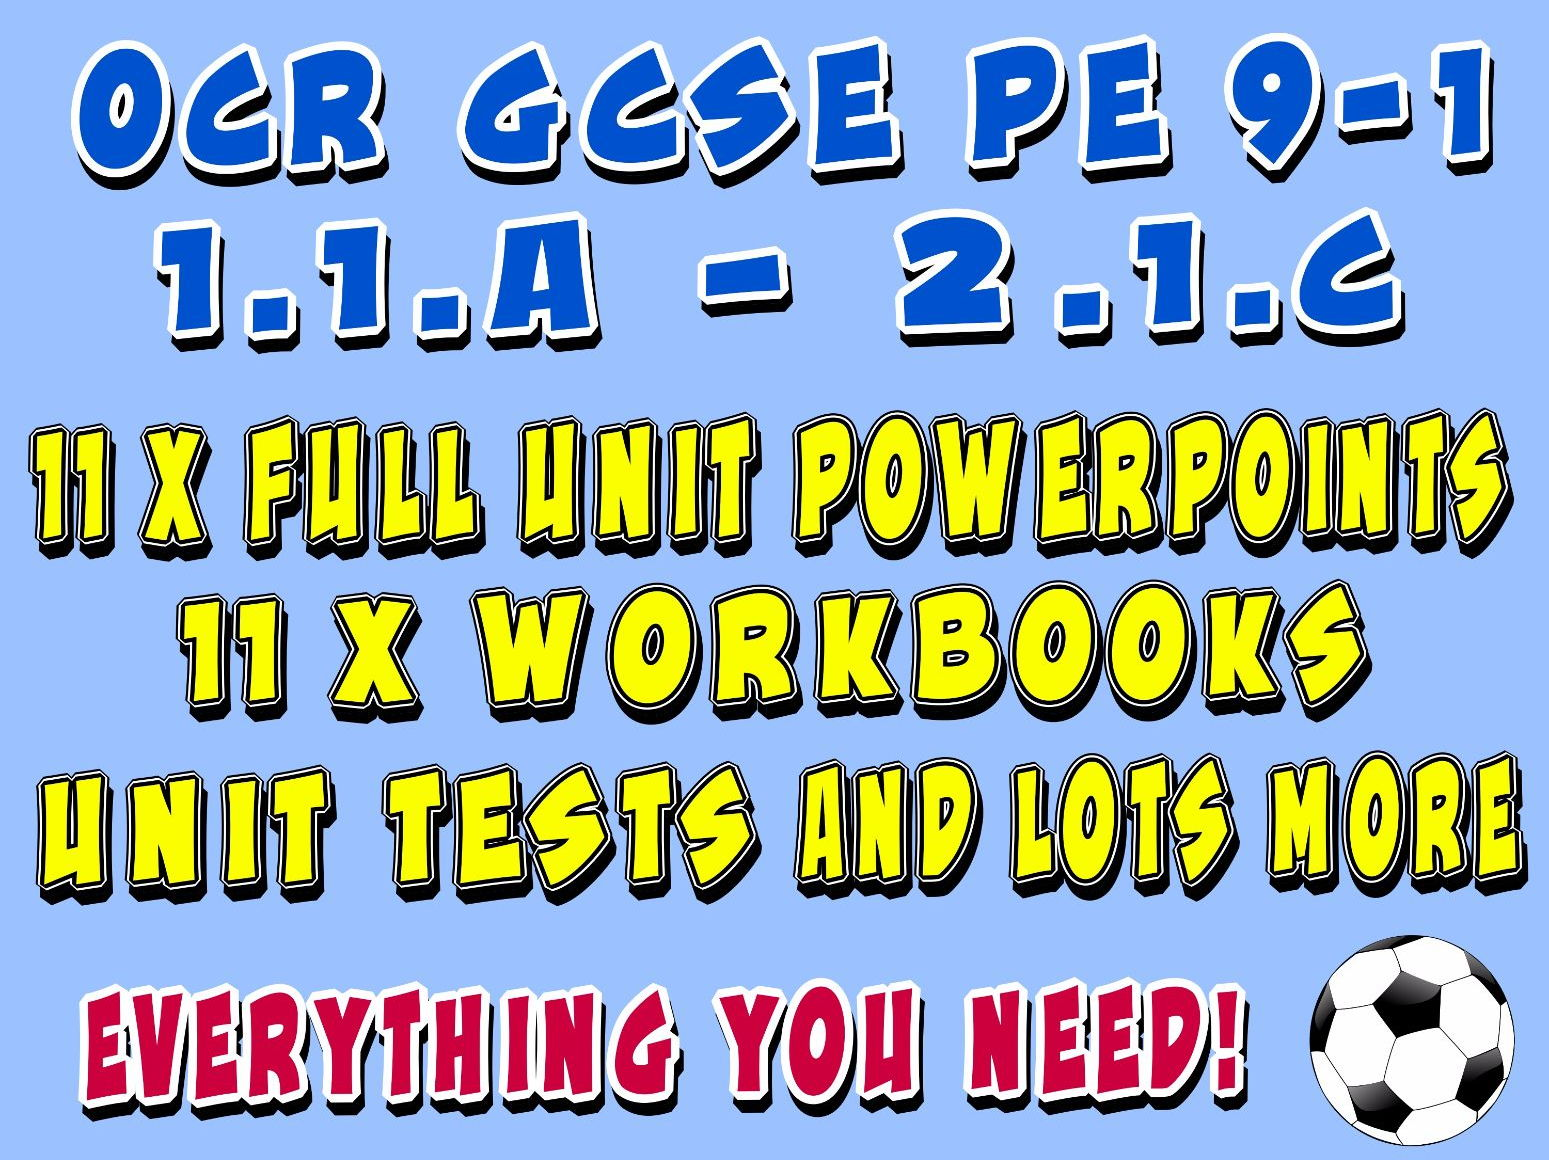 OCR GCSE PE 9-1 (2016 - NEW) - Applied Anatomy and Physiology, Physical Training and Socio-Cultural Influences - Complete Units of Work